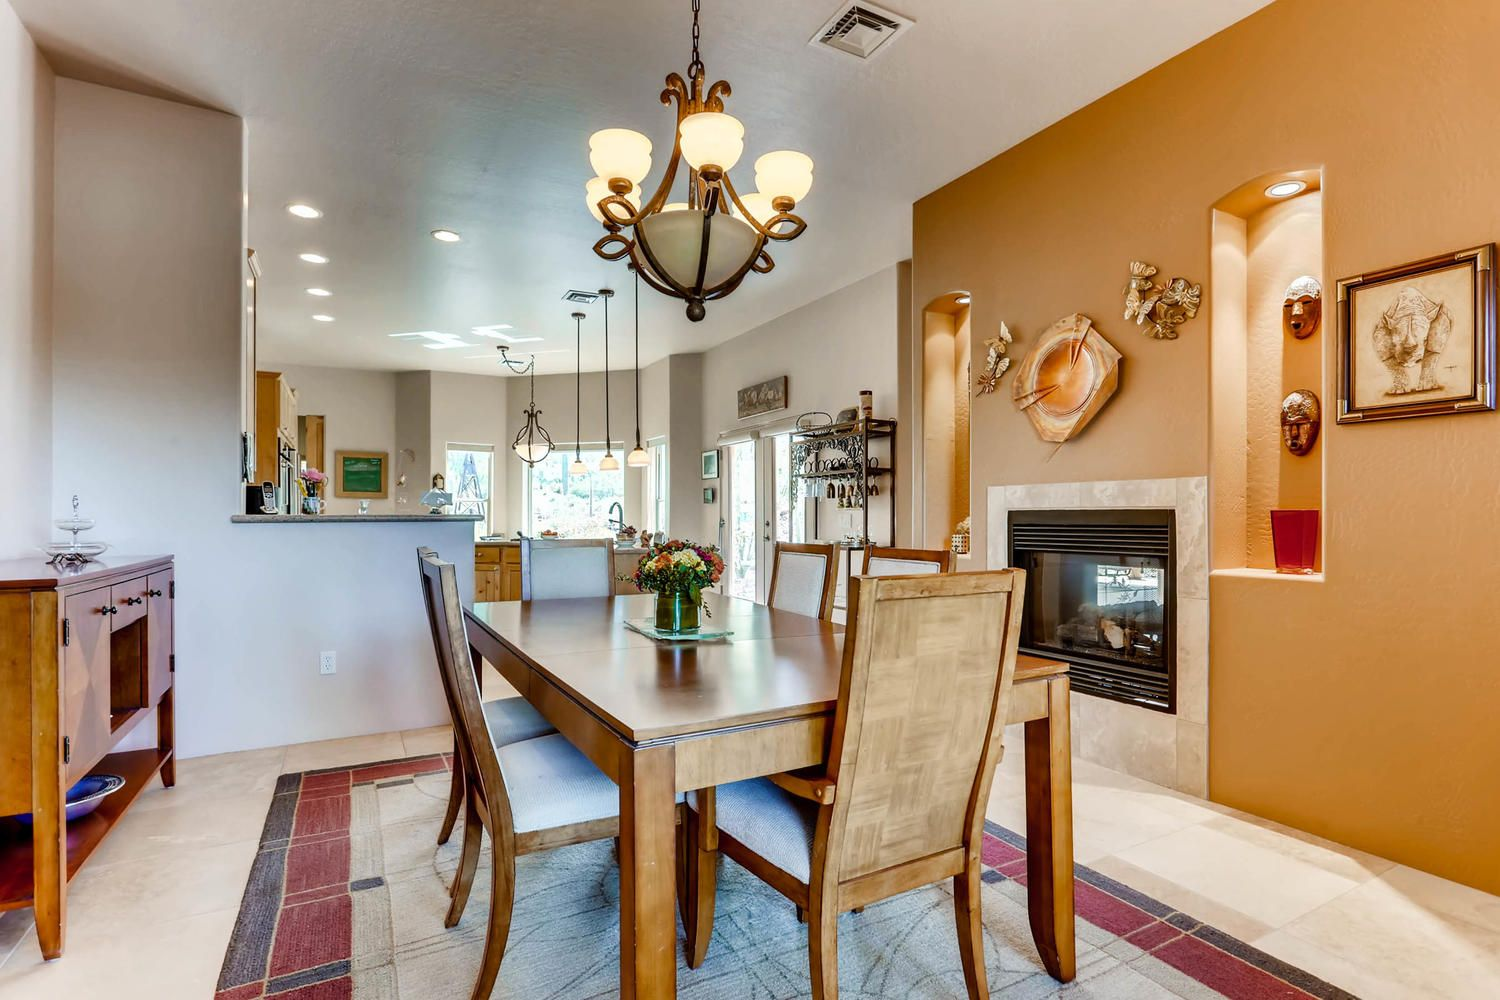 breakfast room has a two way fireplace that is shared with the